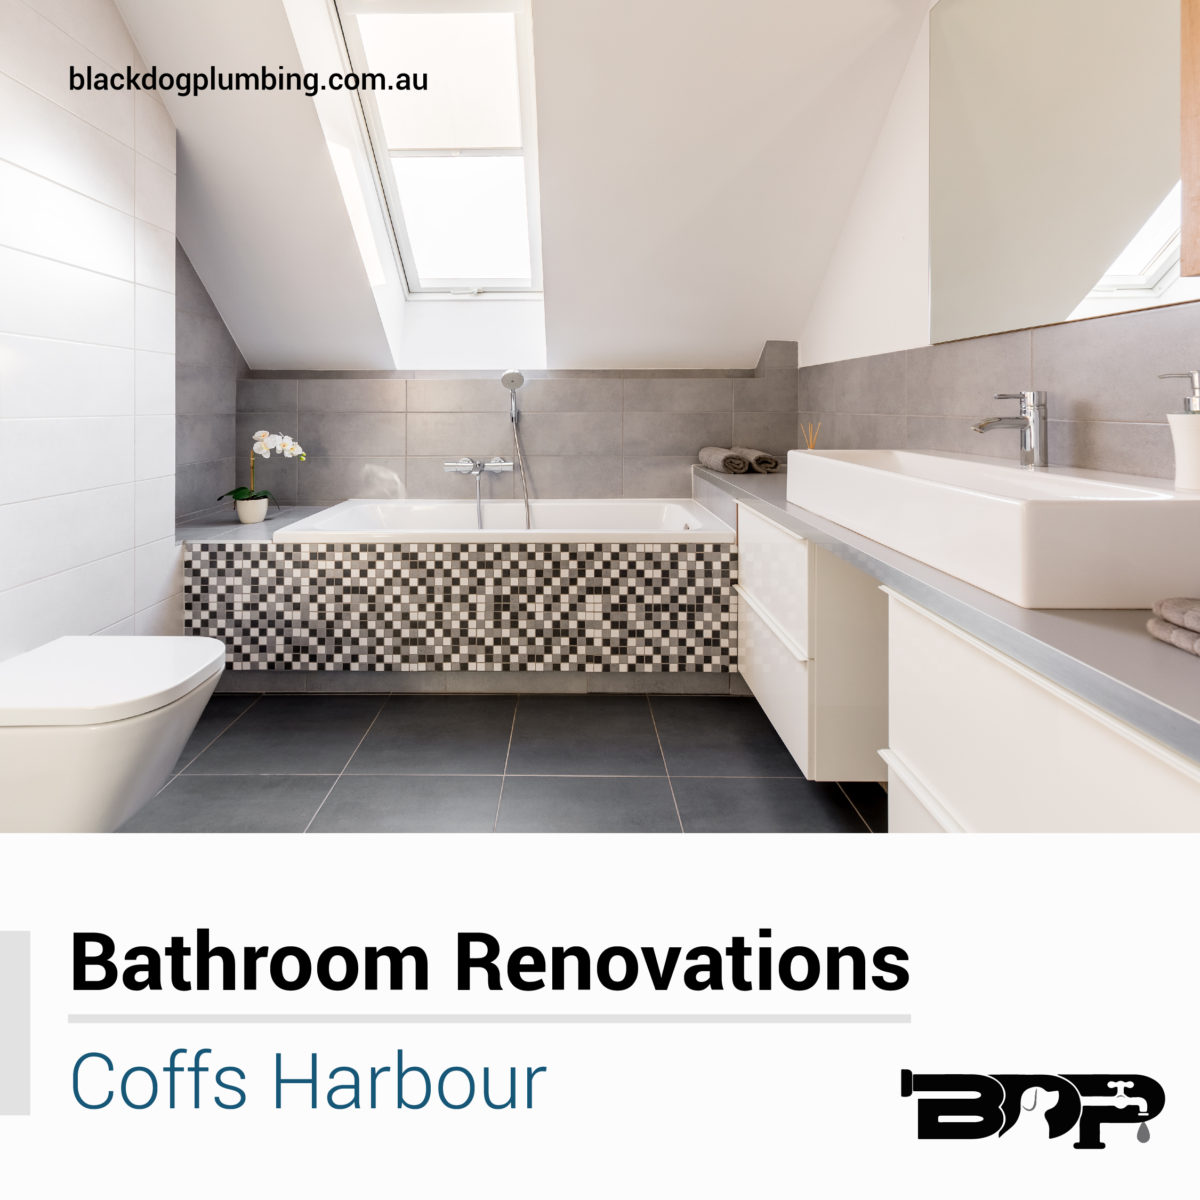 for bathrooms Coffs Harbour